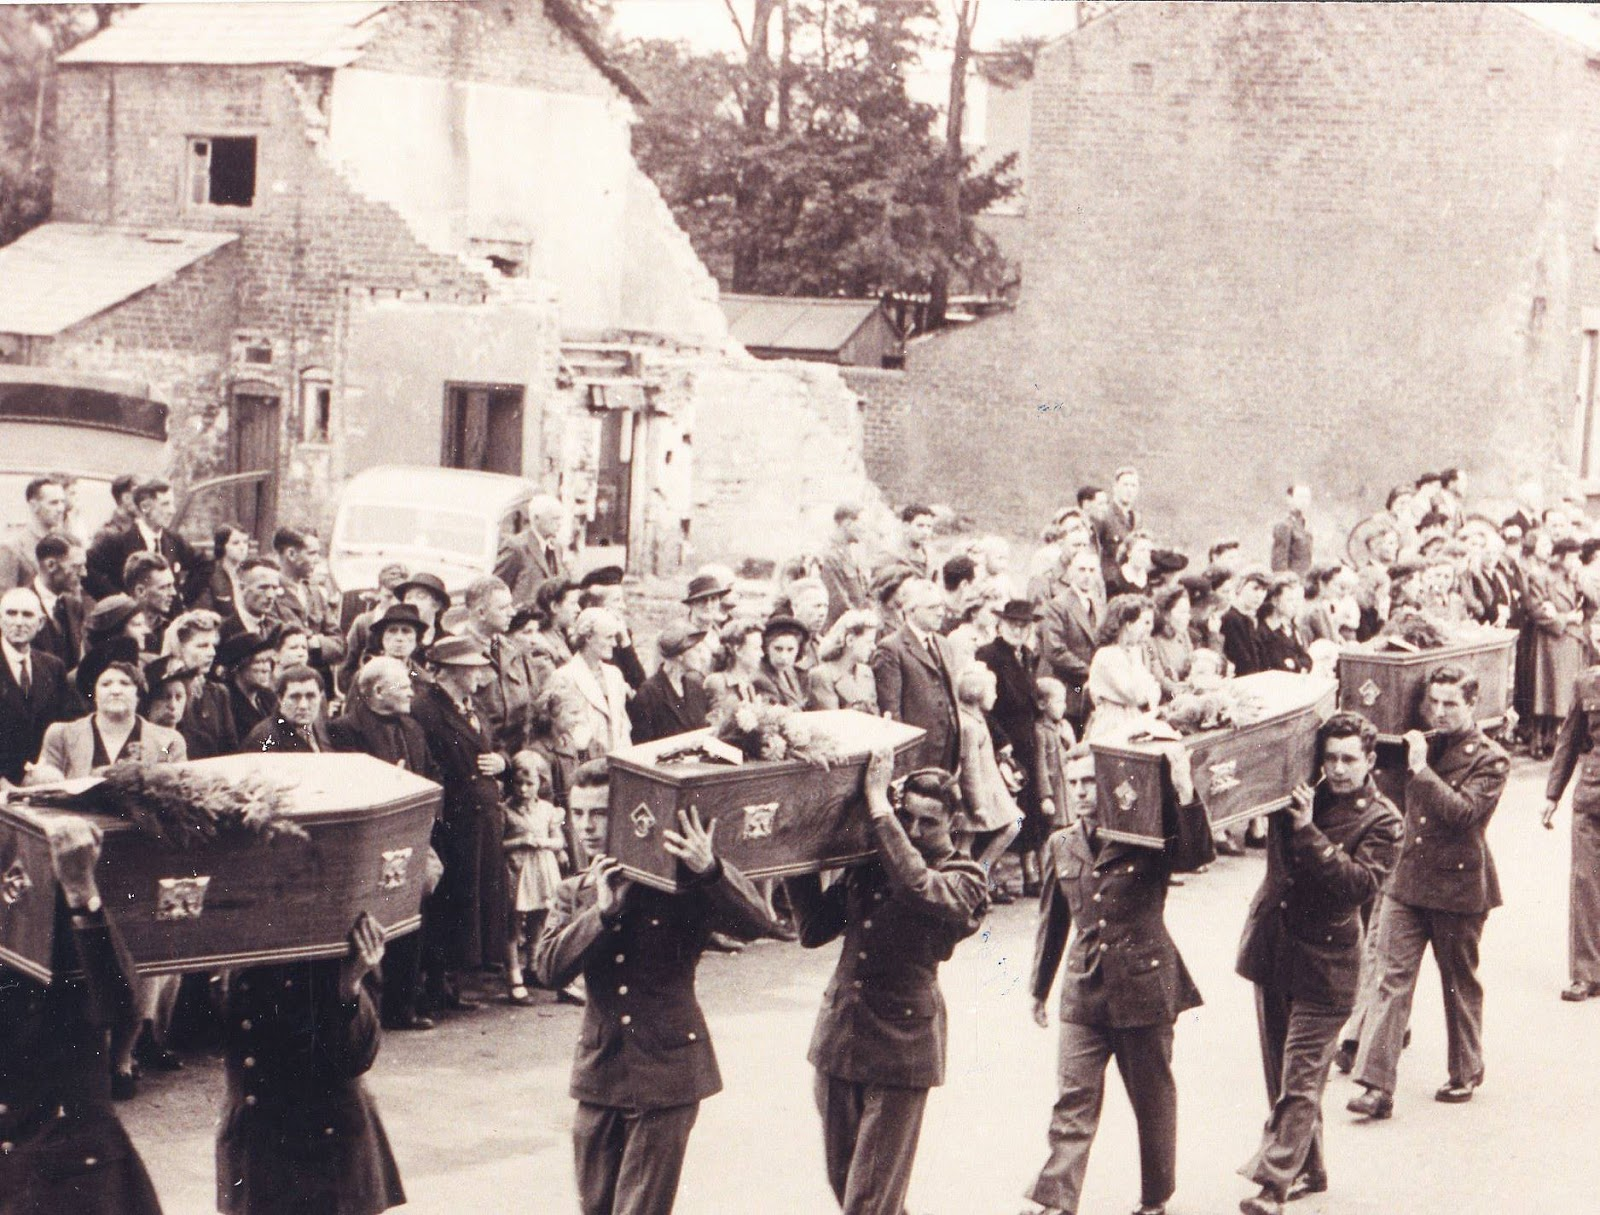 World War II funeral